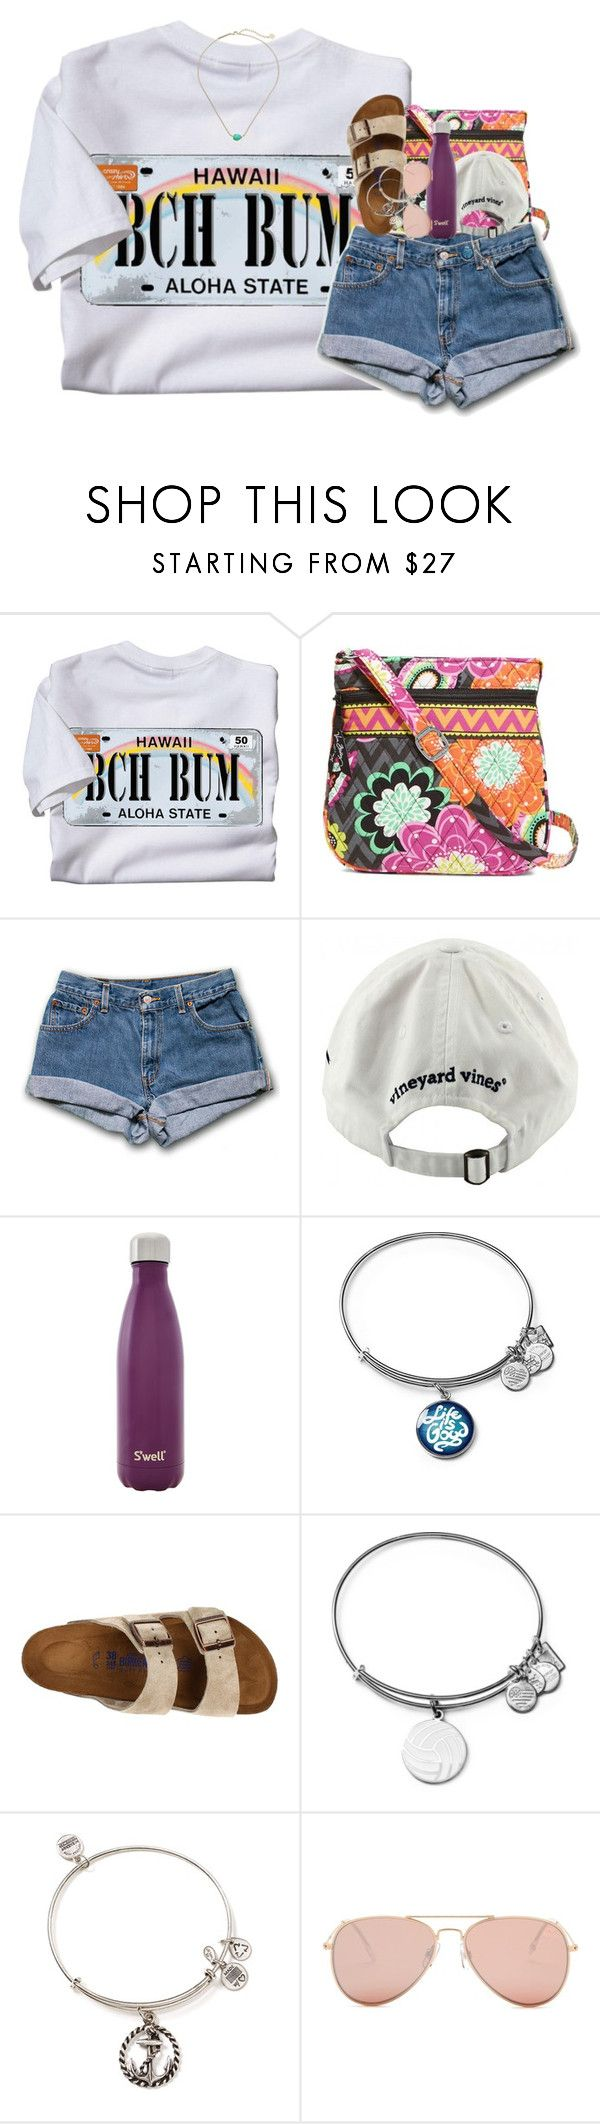 """""""a LOT in the D!"""" by pineappleprincess1012 ❤ liked on Polyvore featuring Vera Bradley, Vineyard Vines, S'well, Alex and Ani, Birkenstock, Betsey Johnson and Kendra Scott"""